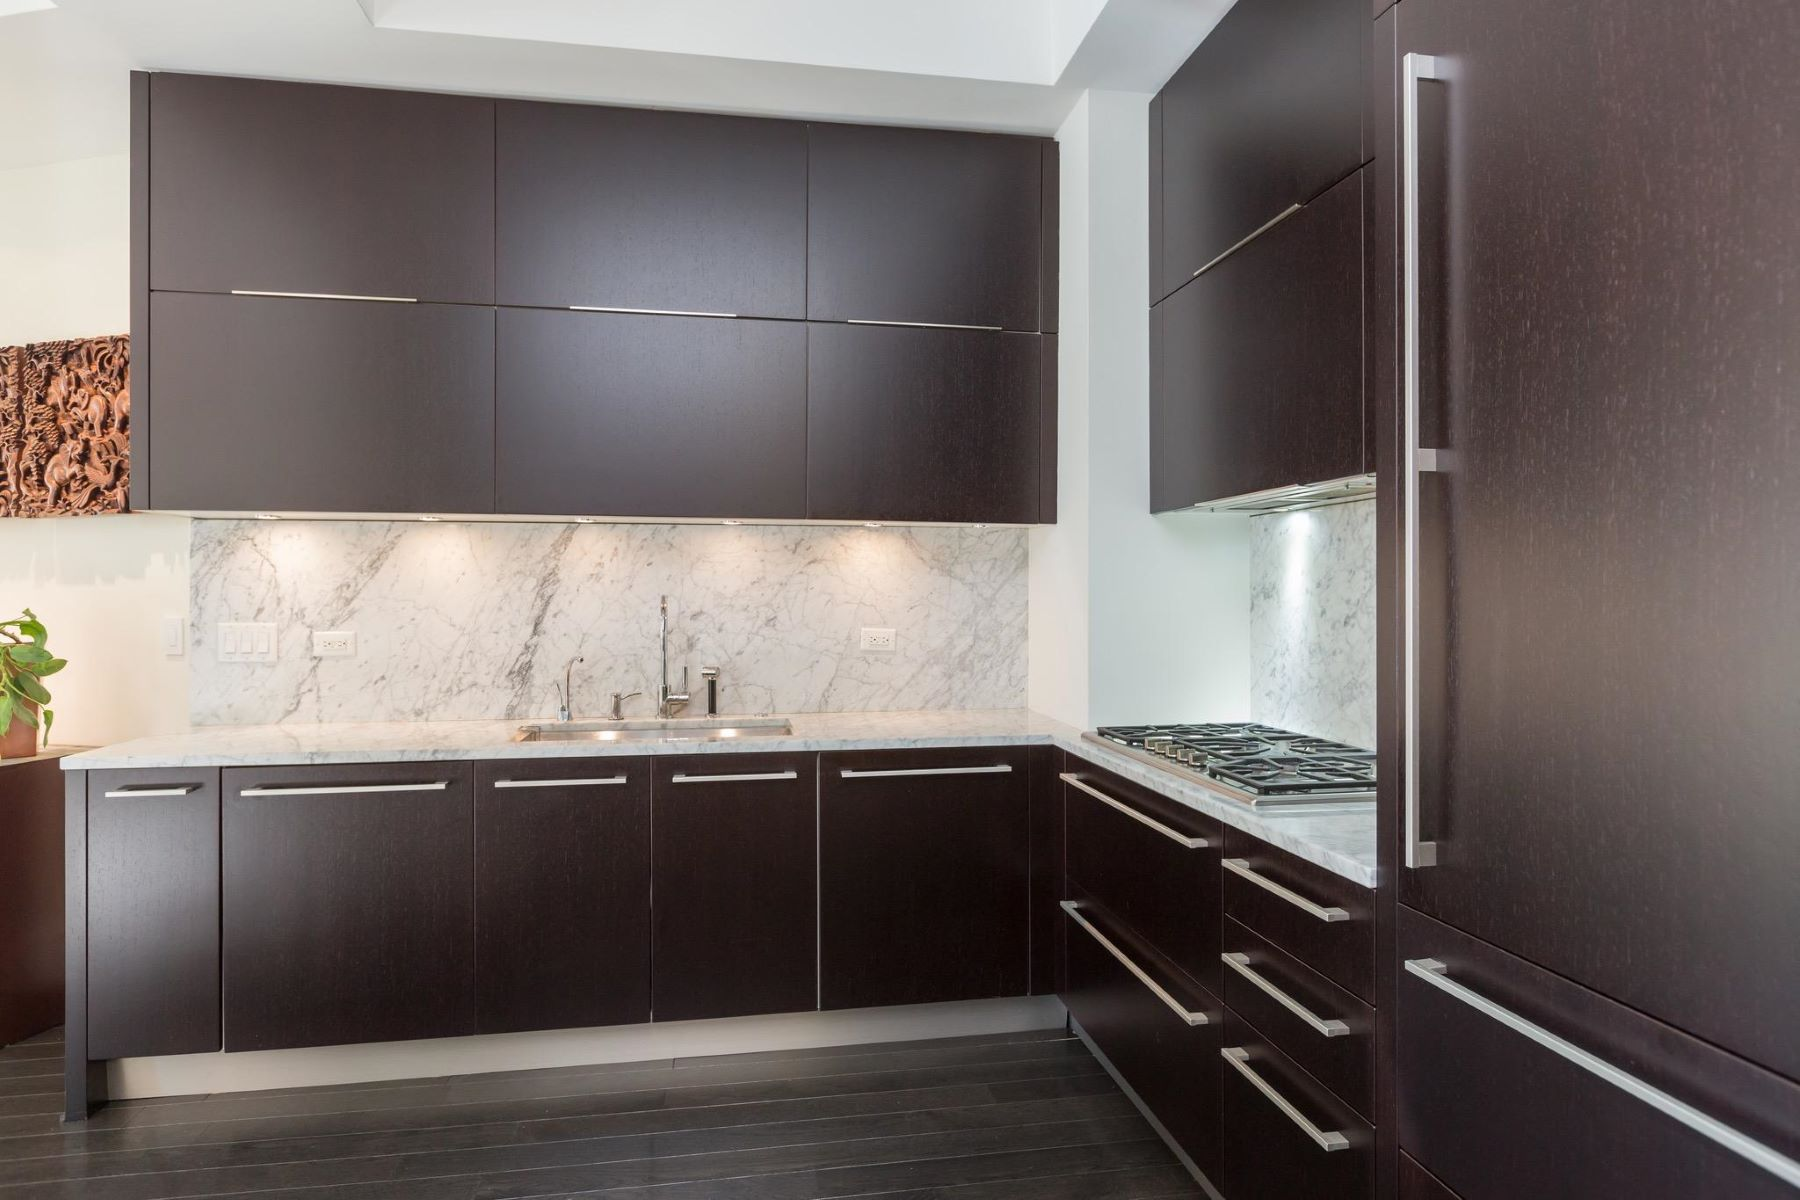 Additional photo for property listing at 2501 Pennsylvania Ave Nw #2a 2501 Pennsylvania Ave Nw #2a Washington, District Of Columbia 20037 United States